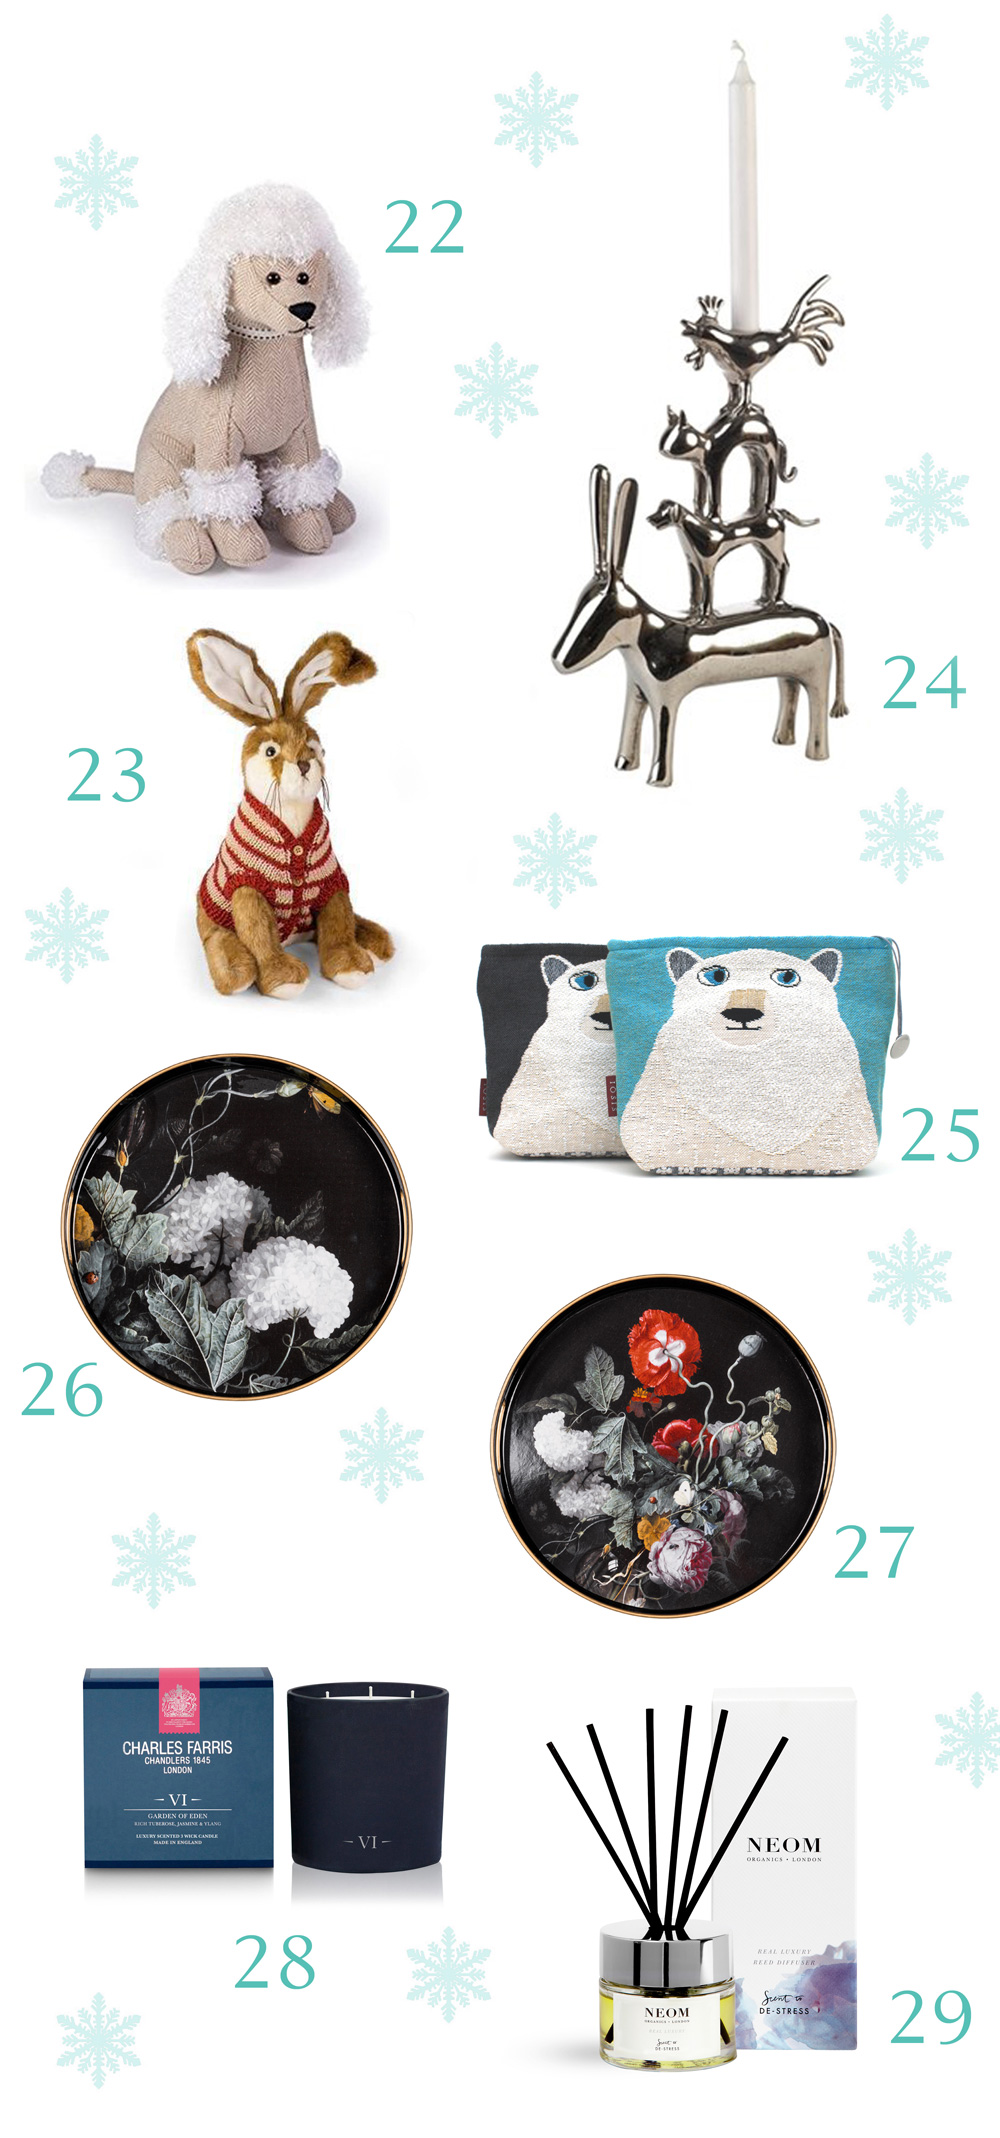 Jenny Blanc - Fabulous Gifts and Decorations 2017 Gift Guide3